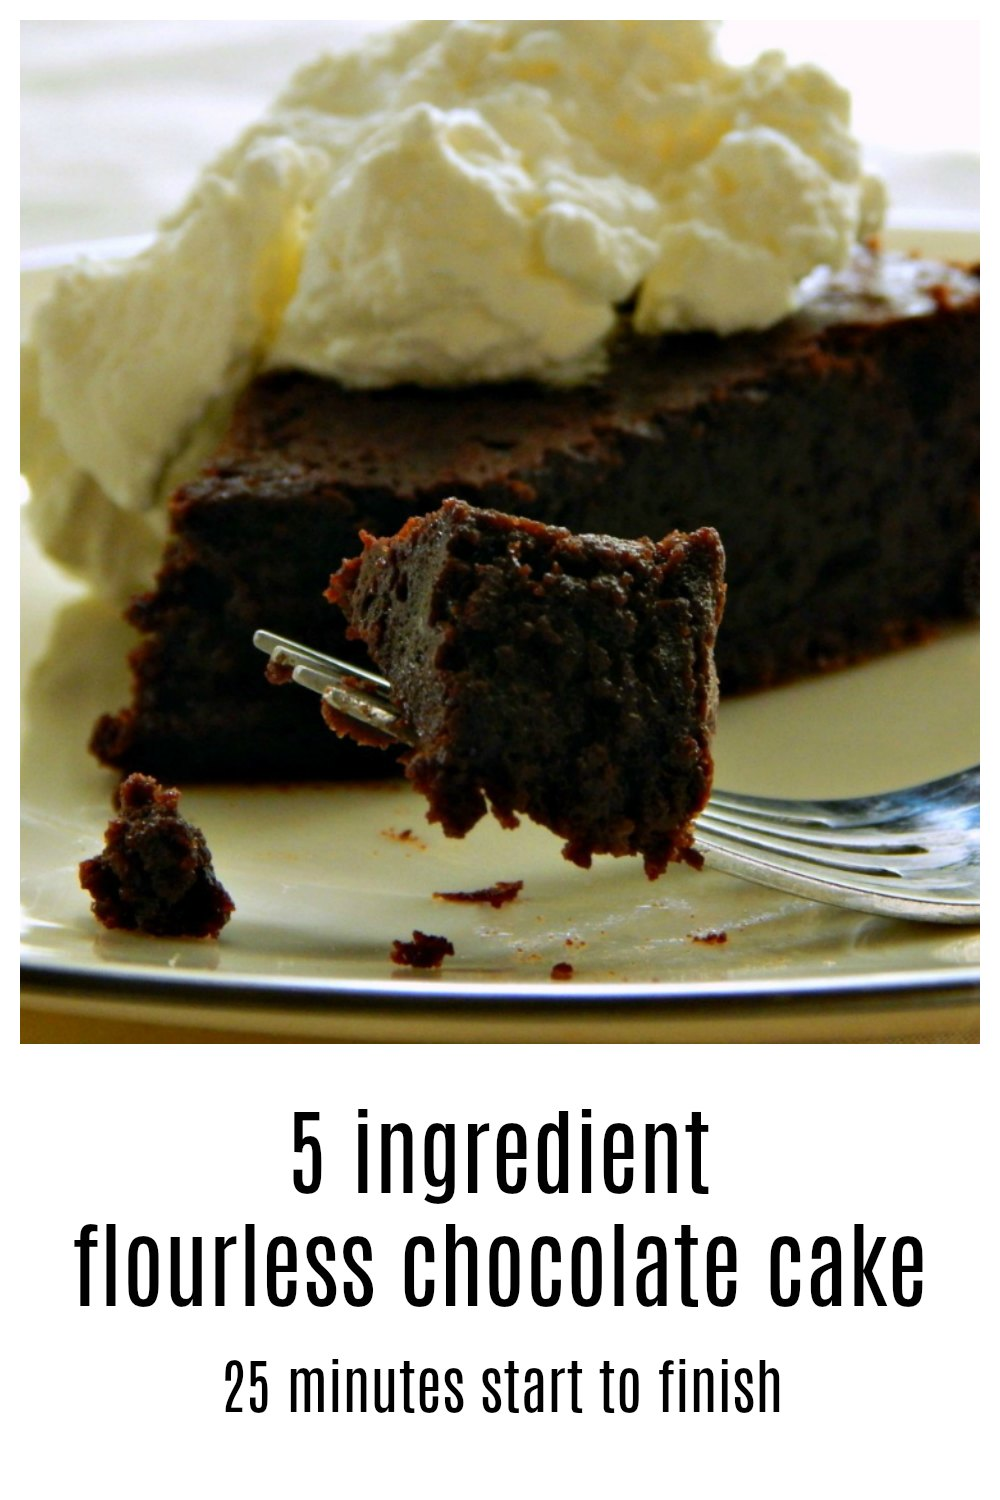 This is the famous 5 ingredient 25-minute start to finish flourless chocolate cake from Gourmet Magazine. It's a little homely but oh so chocolaty! #GourmetsFlourlessChocolateCake #FlourlessChocolateCake